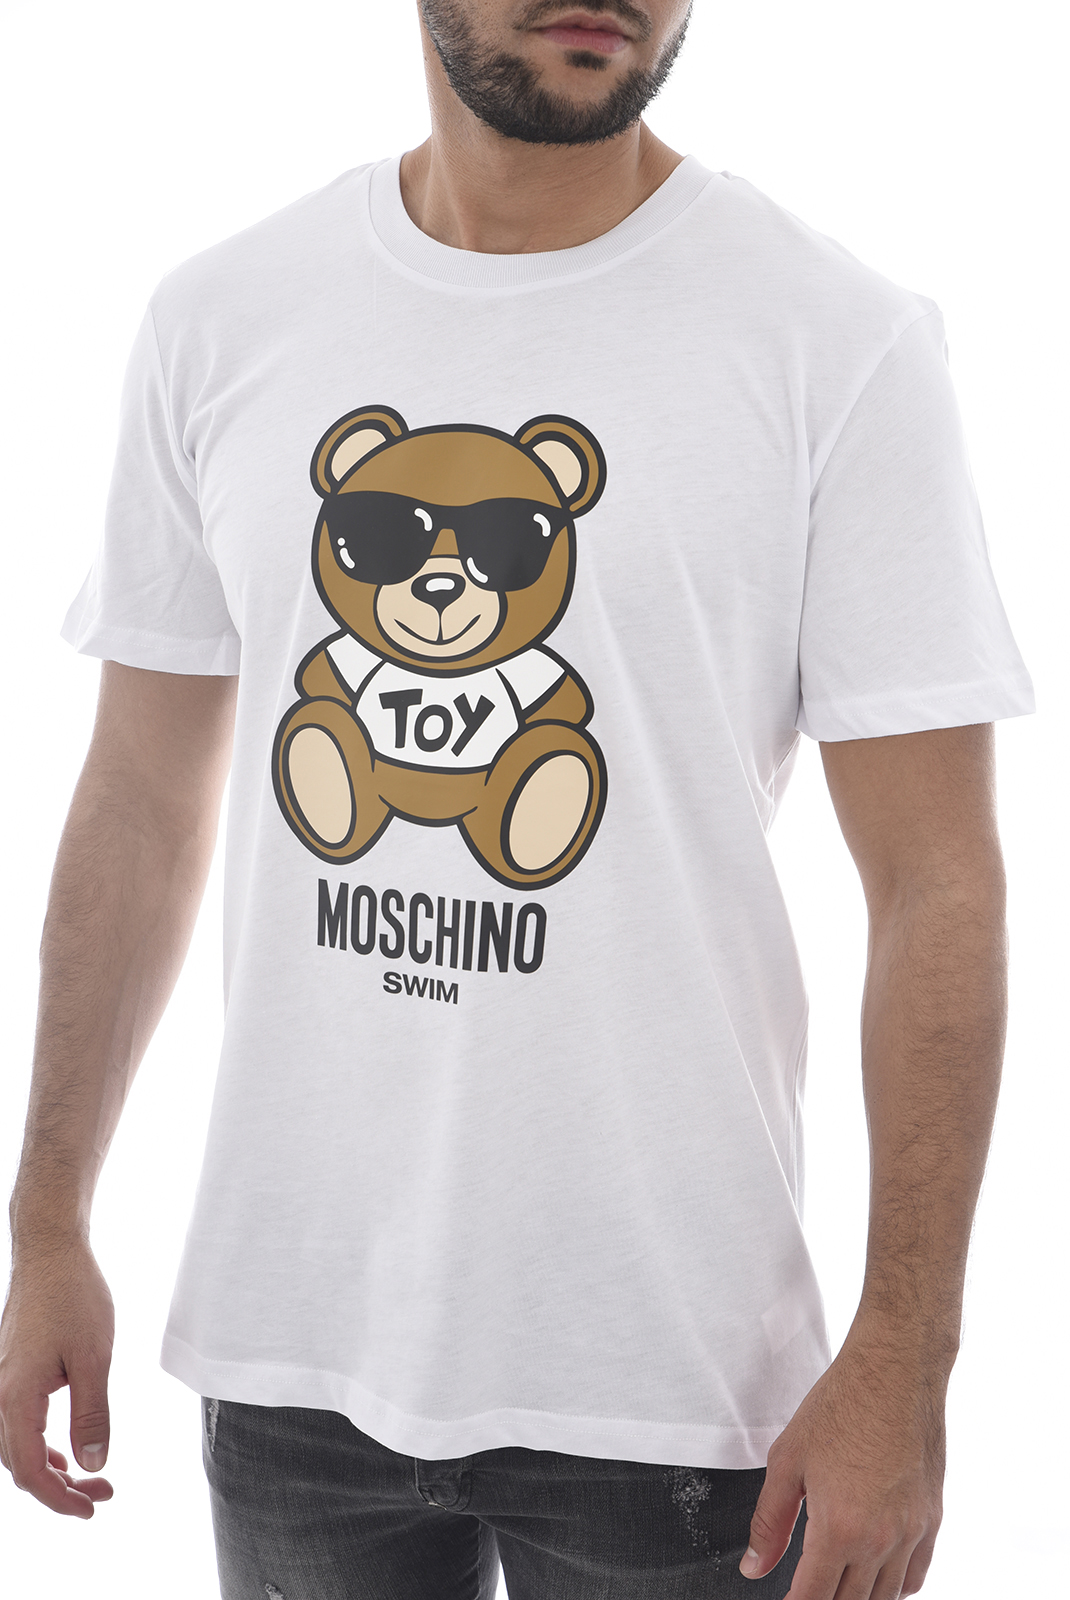 Homme  Moschino 3A1915 0001 BLANC